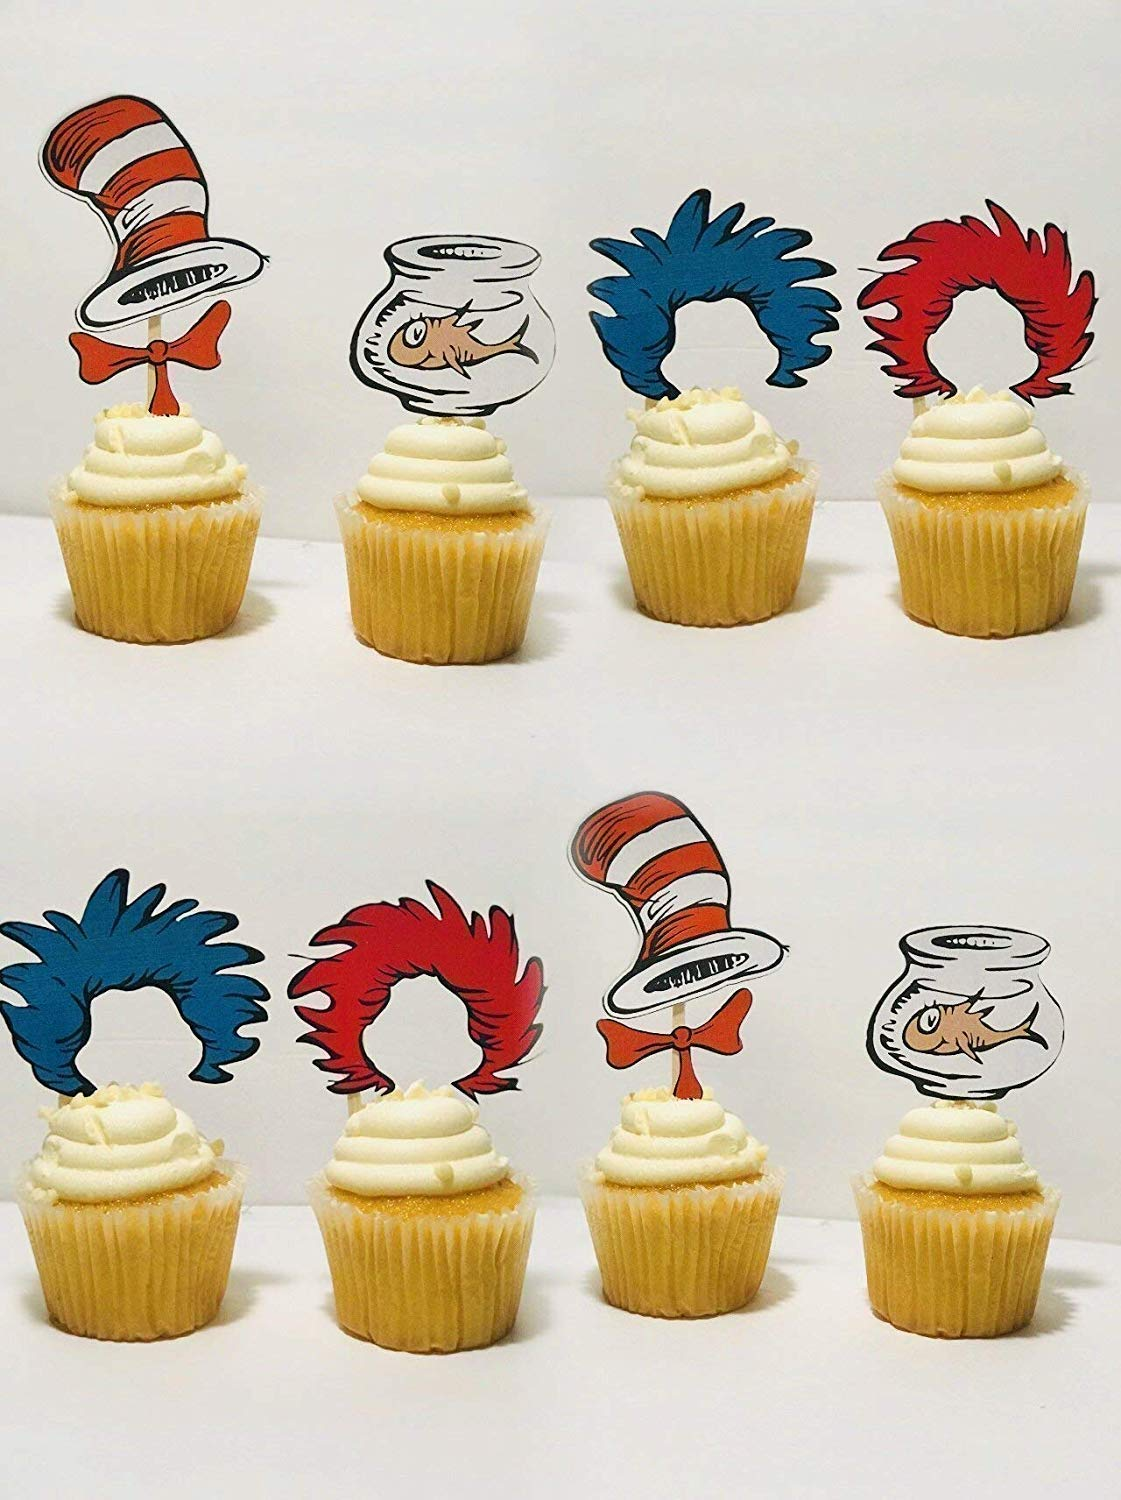 Dr Seuss Cat In The Hat Party Decorations  from images-na.ssl-images-amazon.com